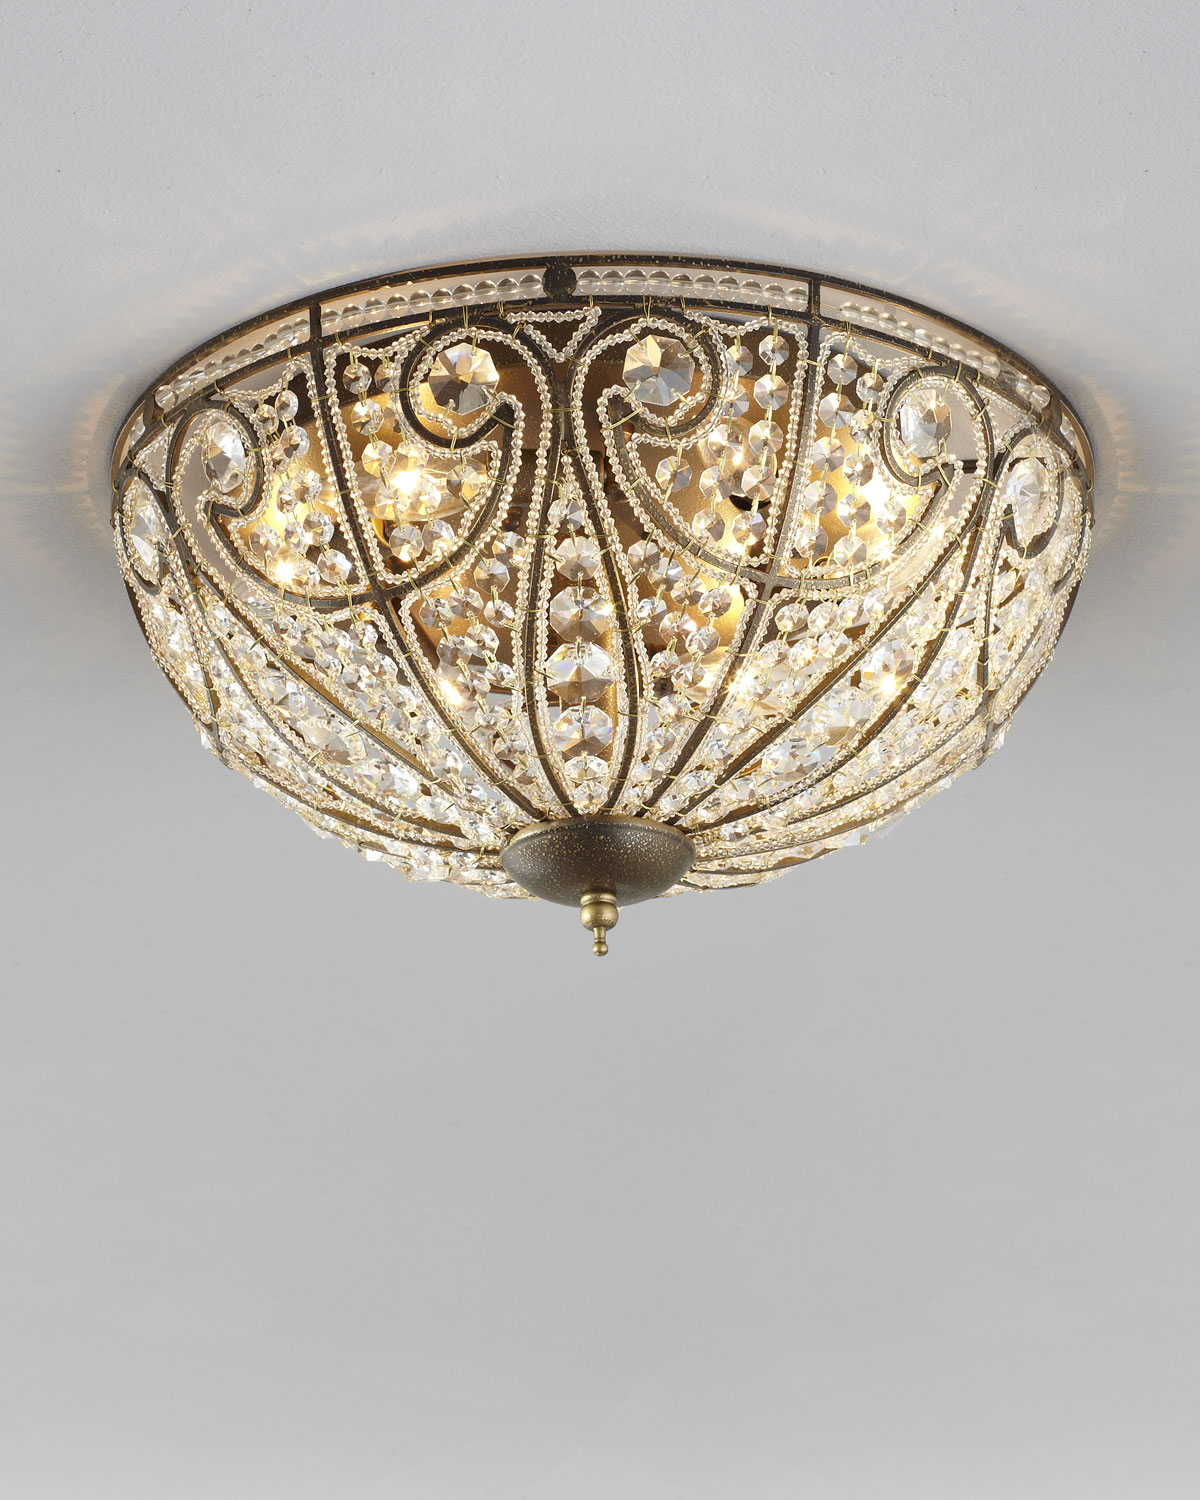 Neiman marcus lighting Pendant Light Neiman Marcus Elizabethan Large Flushmount Ceiling Light Neiman Marcus